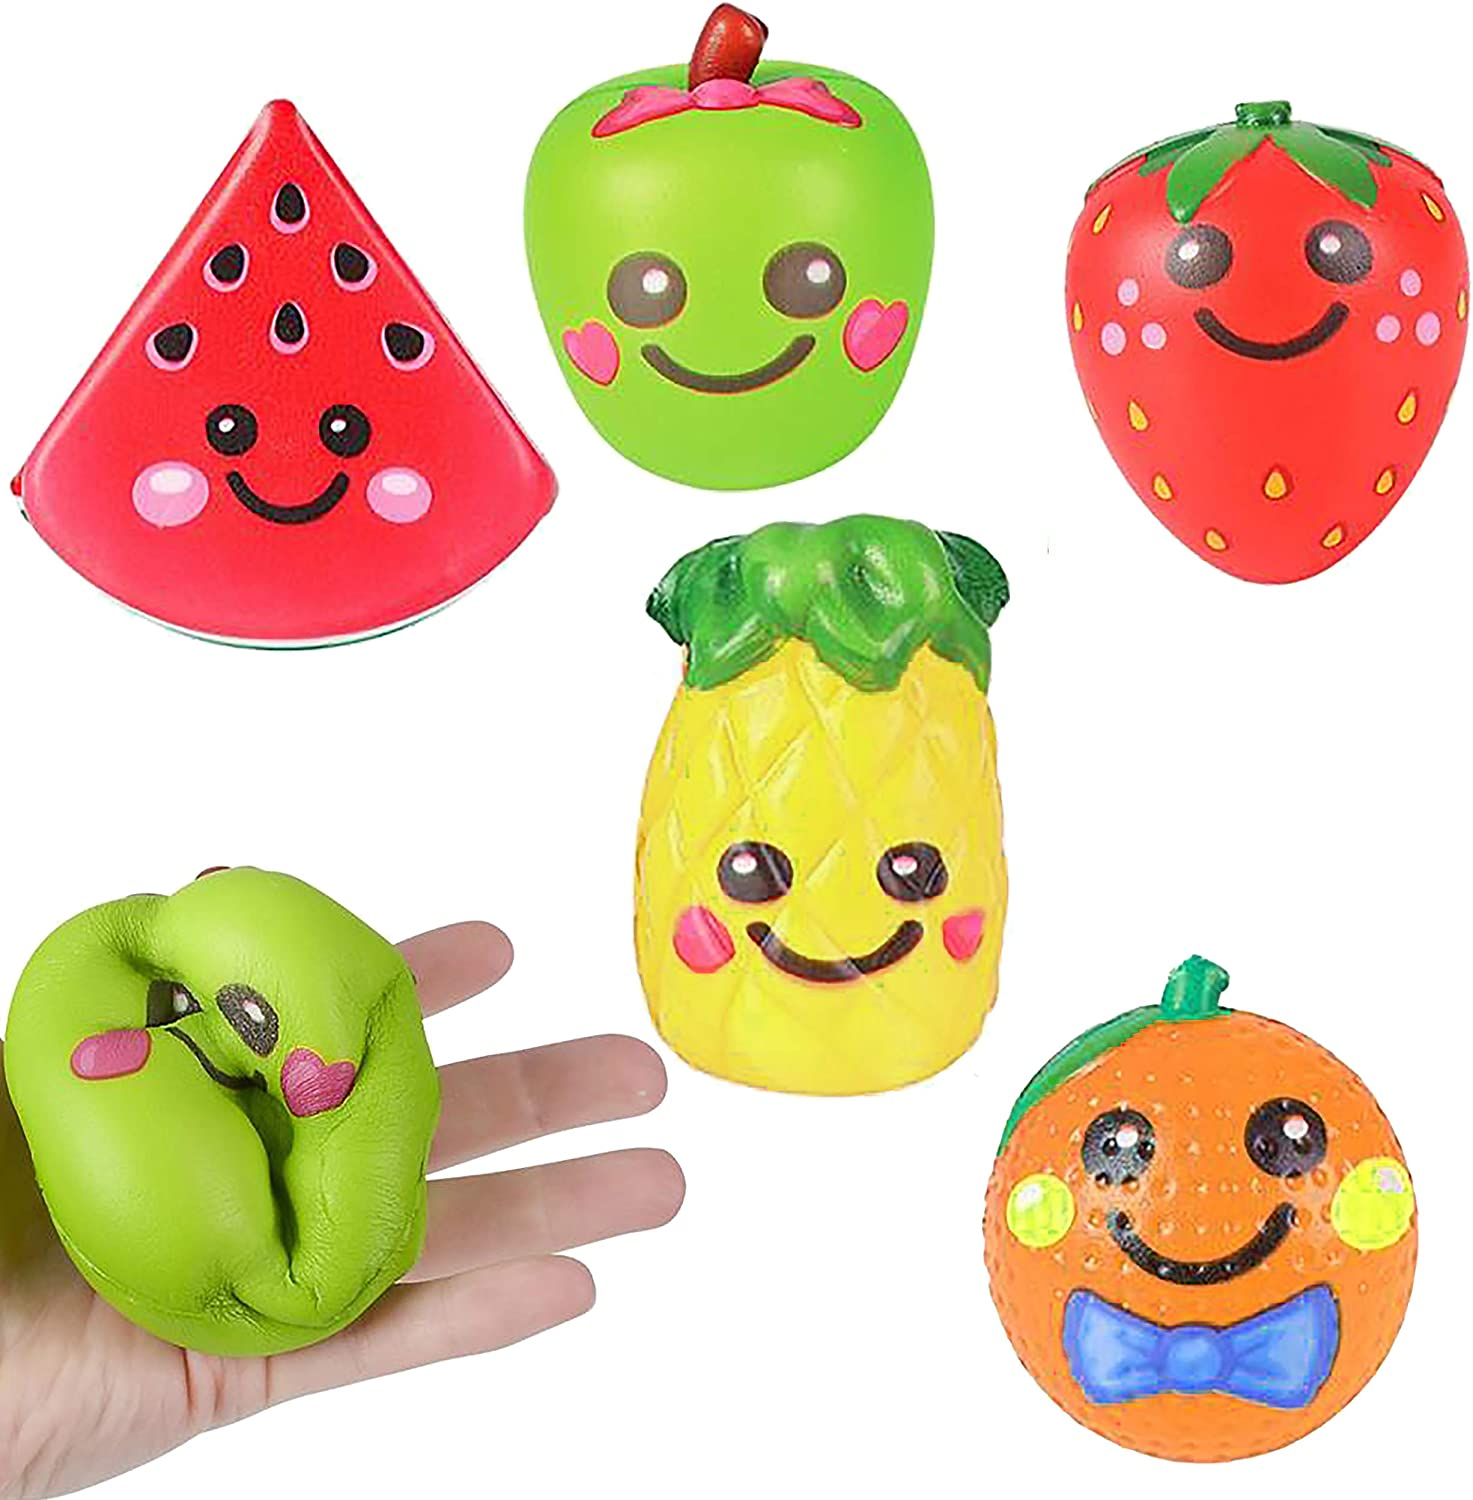 6 Squishy Toys for Kids Squishies Jumbo Slow Rising Pack Food Fruit, 3.75